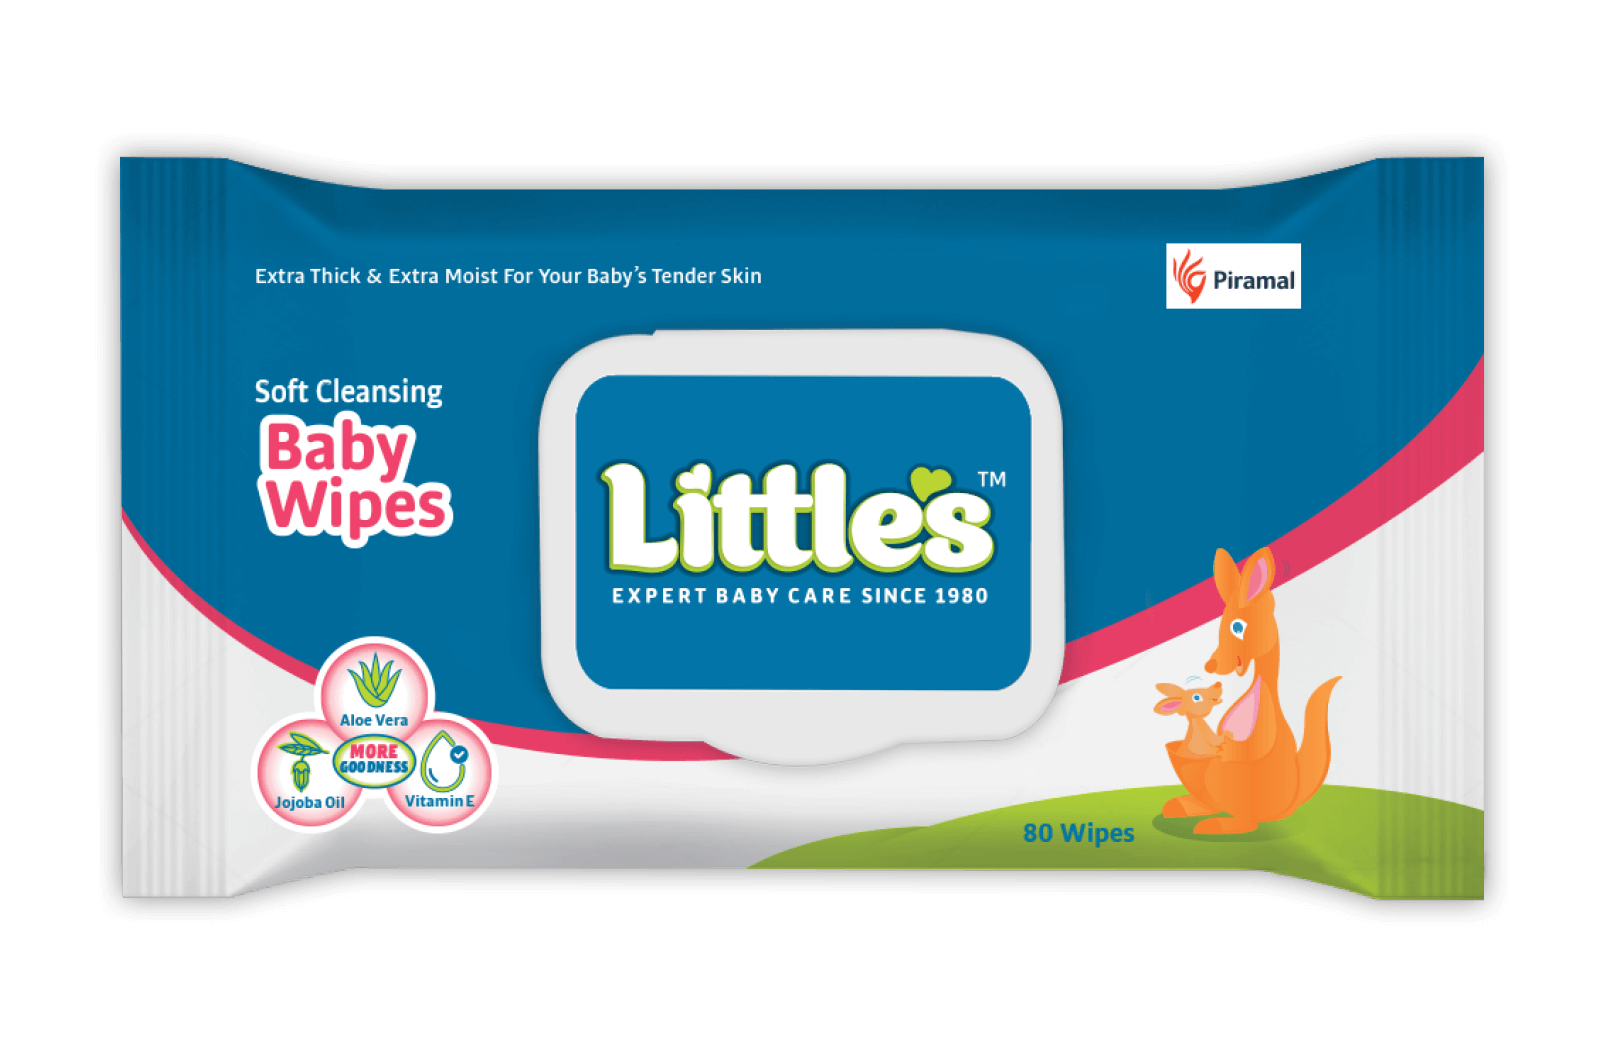 Soft Cleansing Baby Wipes